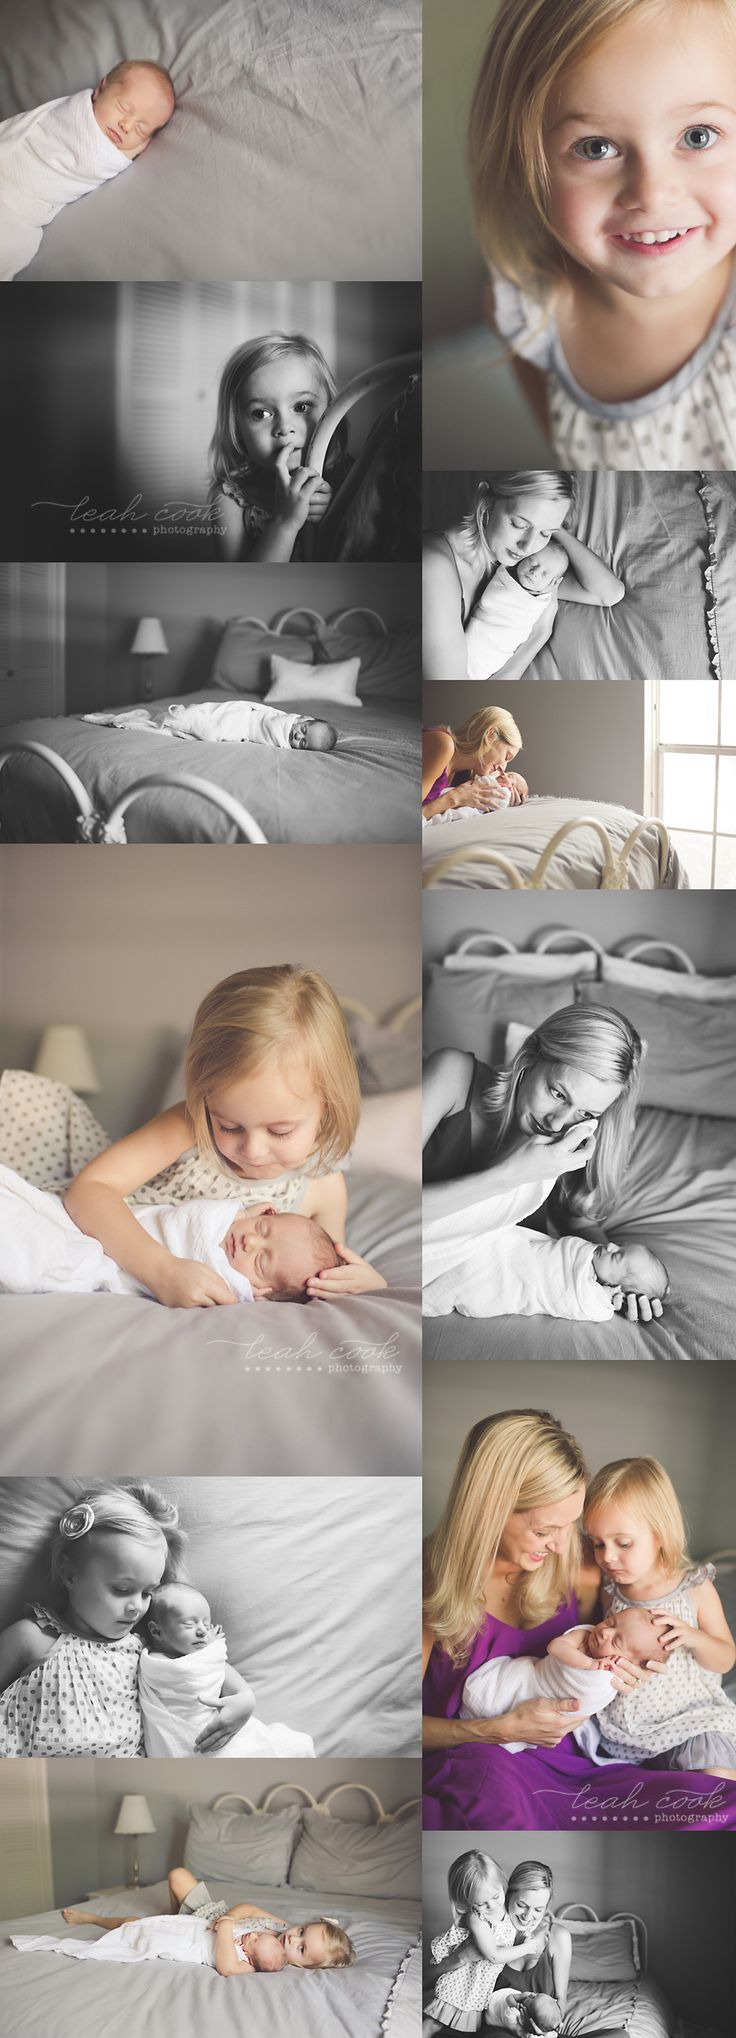 lila | dallas newborn photographer » Dallas Lifestyle Newborn, Baby, Family, Children's + Maternity Photographer | Leah Cook Photography